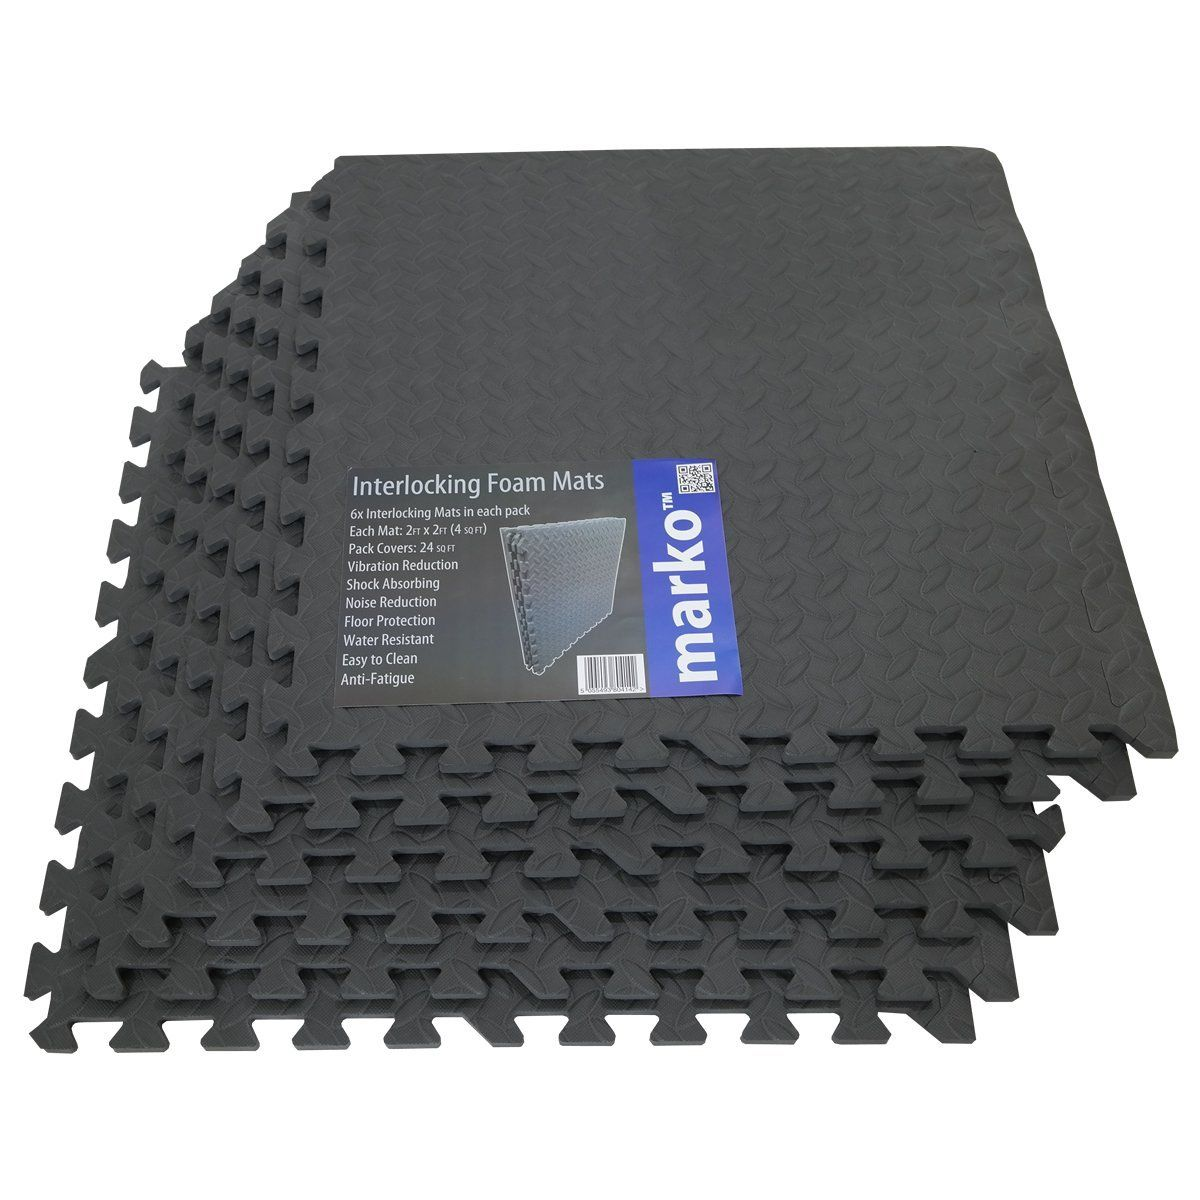 24 Sq Ft Interlocking Foam Mats Tiles Gym Play Garage